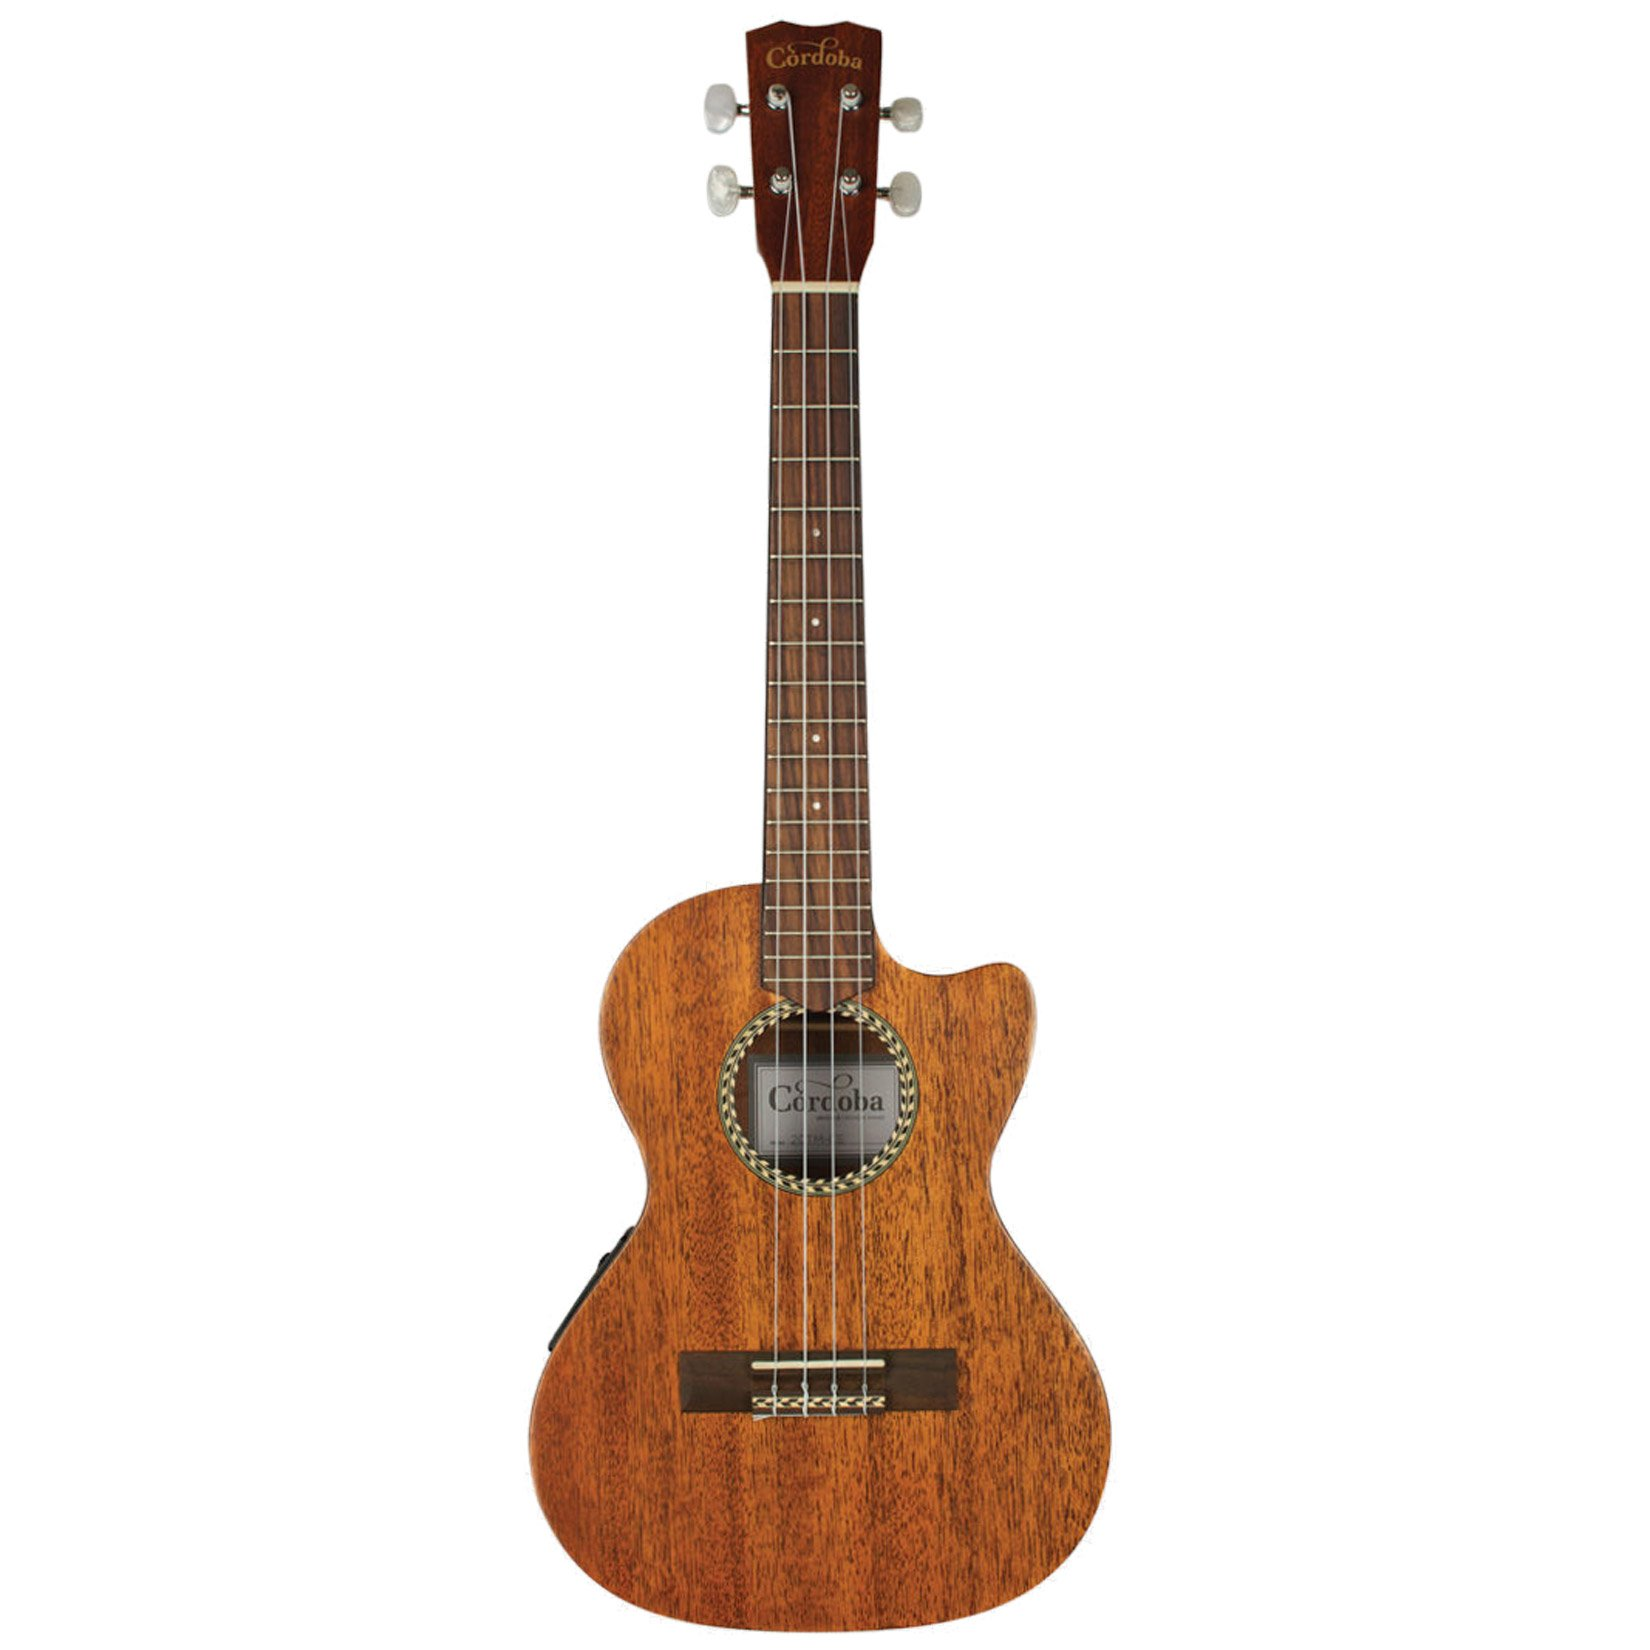 Cordoba 20TM-CE Acoustic Electric Tenor Ukulele